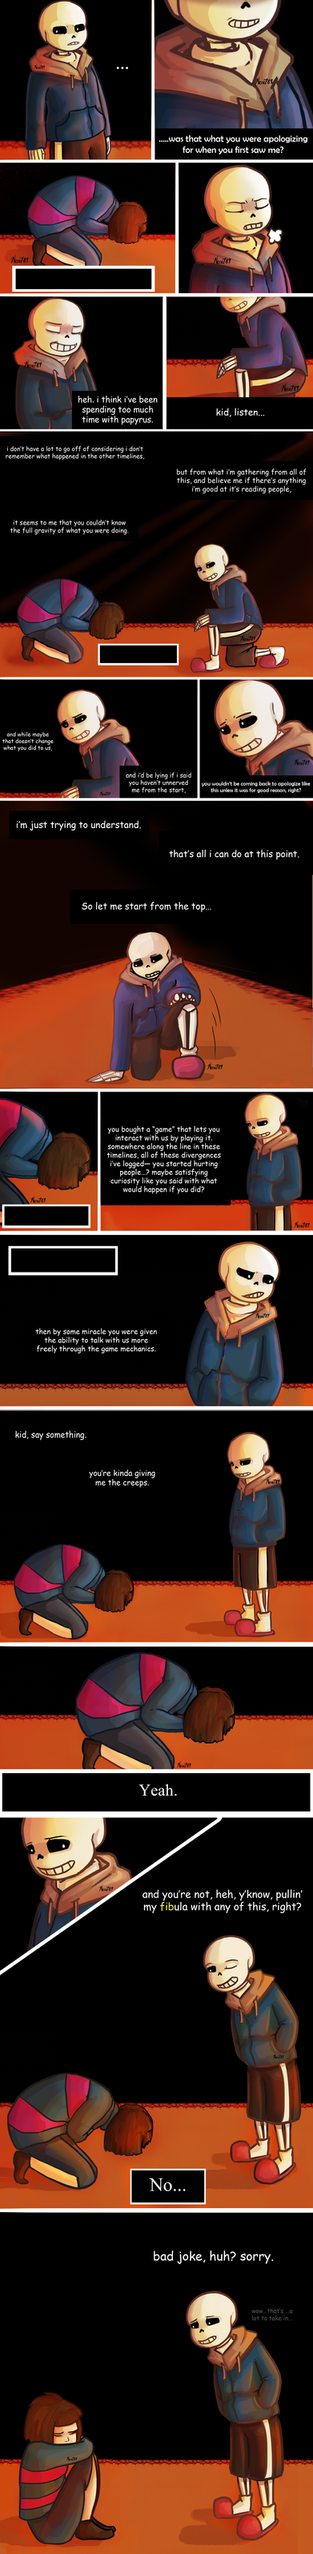 Window Of Reality - Page 16 Chapter 2 by Nera789